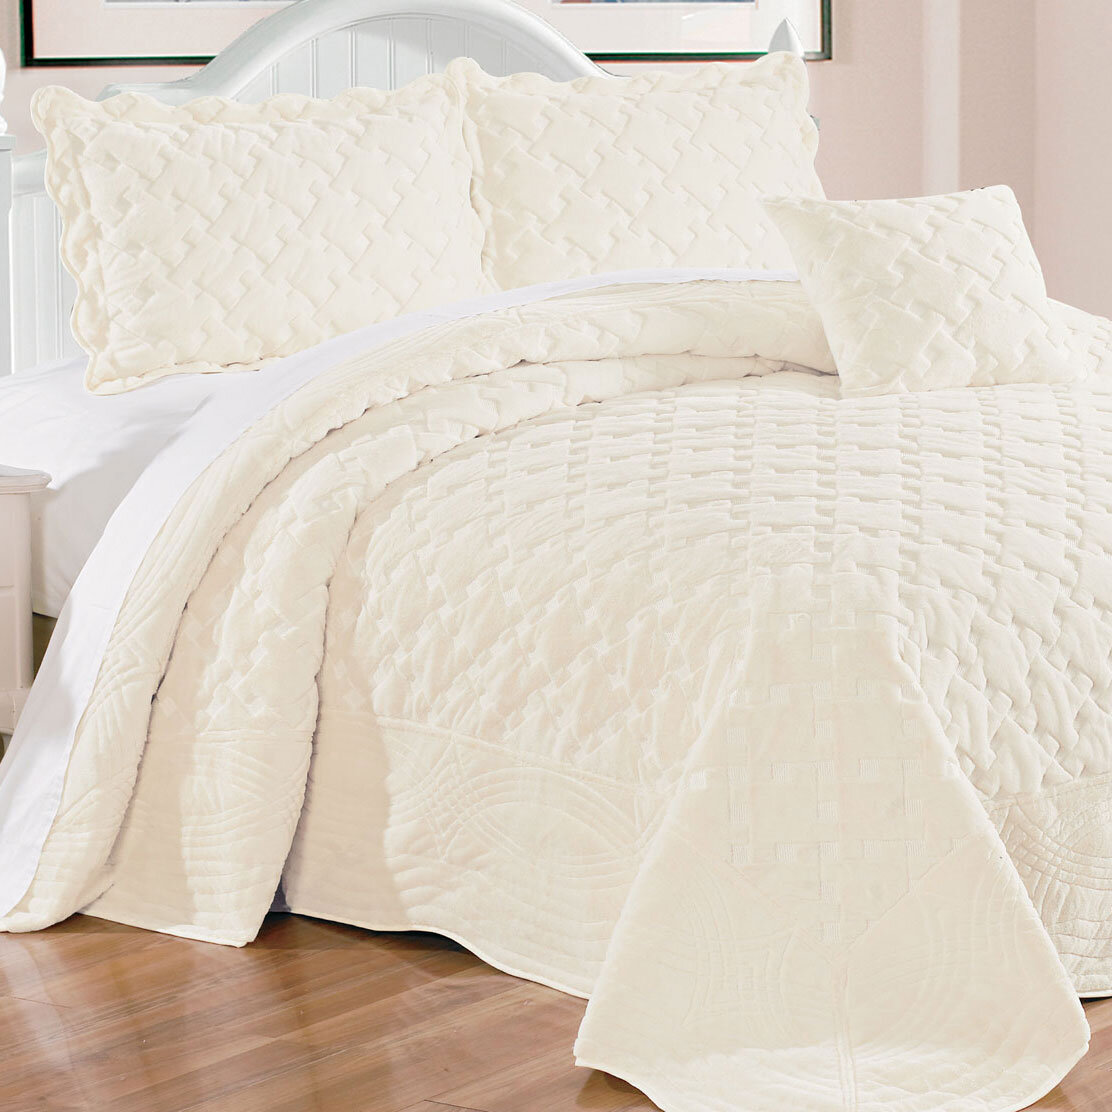 Ivory Cream Throw Blanket Quilts Coverlets Sets You Ll Love In 2021 Wayfair